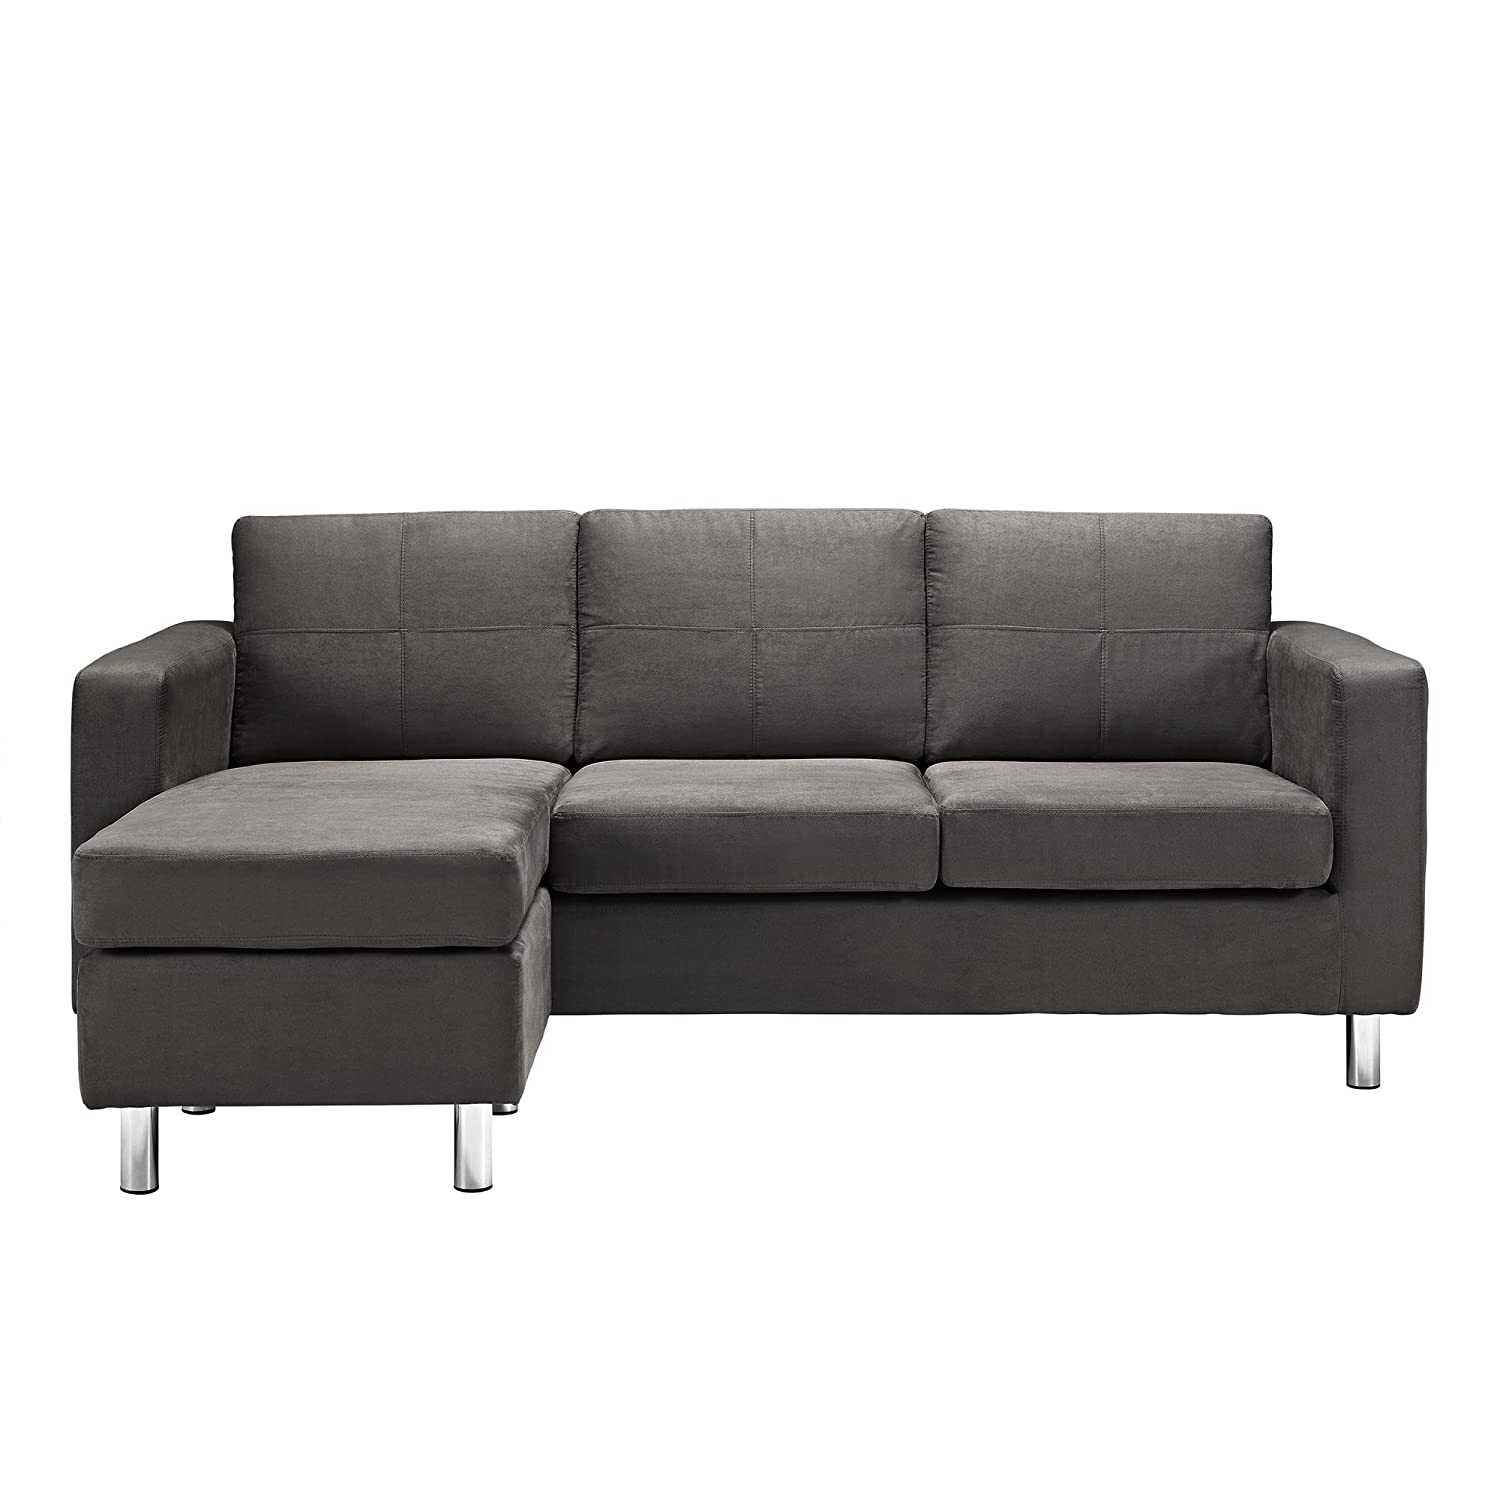 Etonnant Amazon.com: Dorel Living Small Spaces Configurable Sectional Sofa, Gray:  Kitchen U0026 Dining